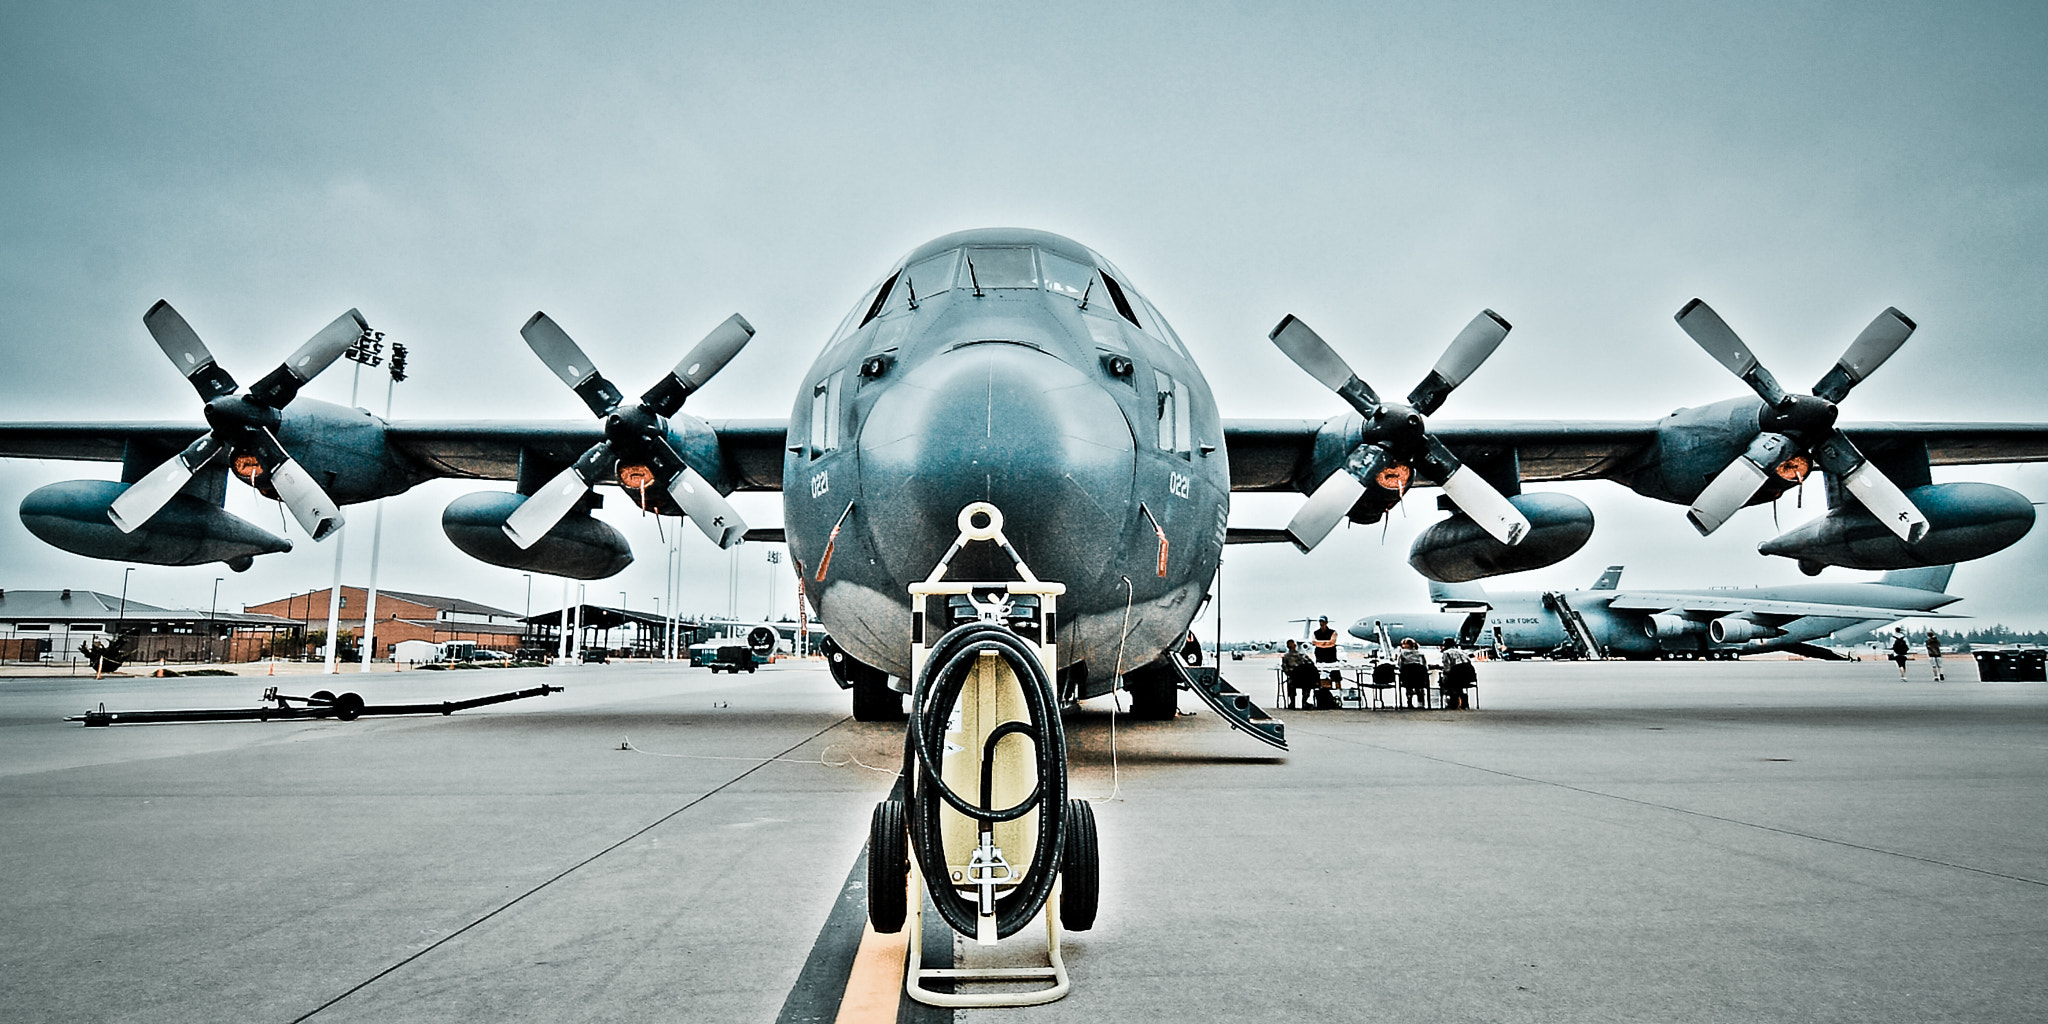 Photograph C-130 Hercules by Jason Groepper on 500px